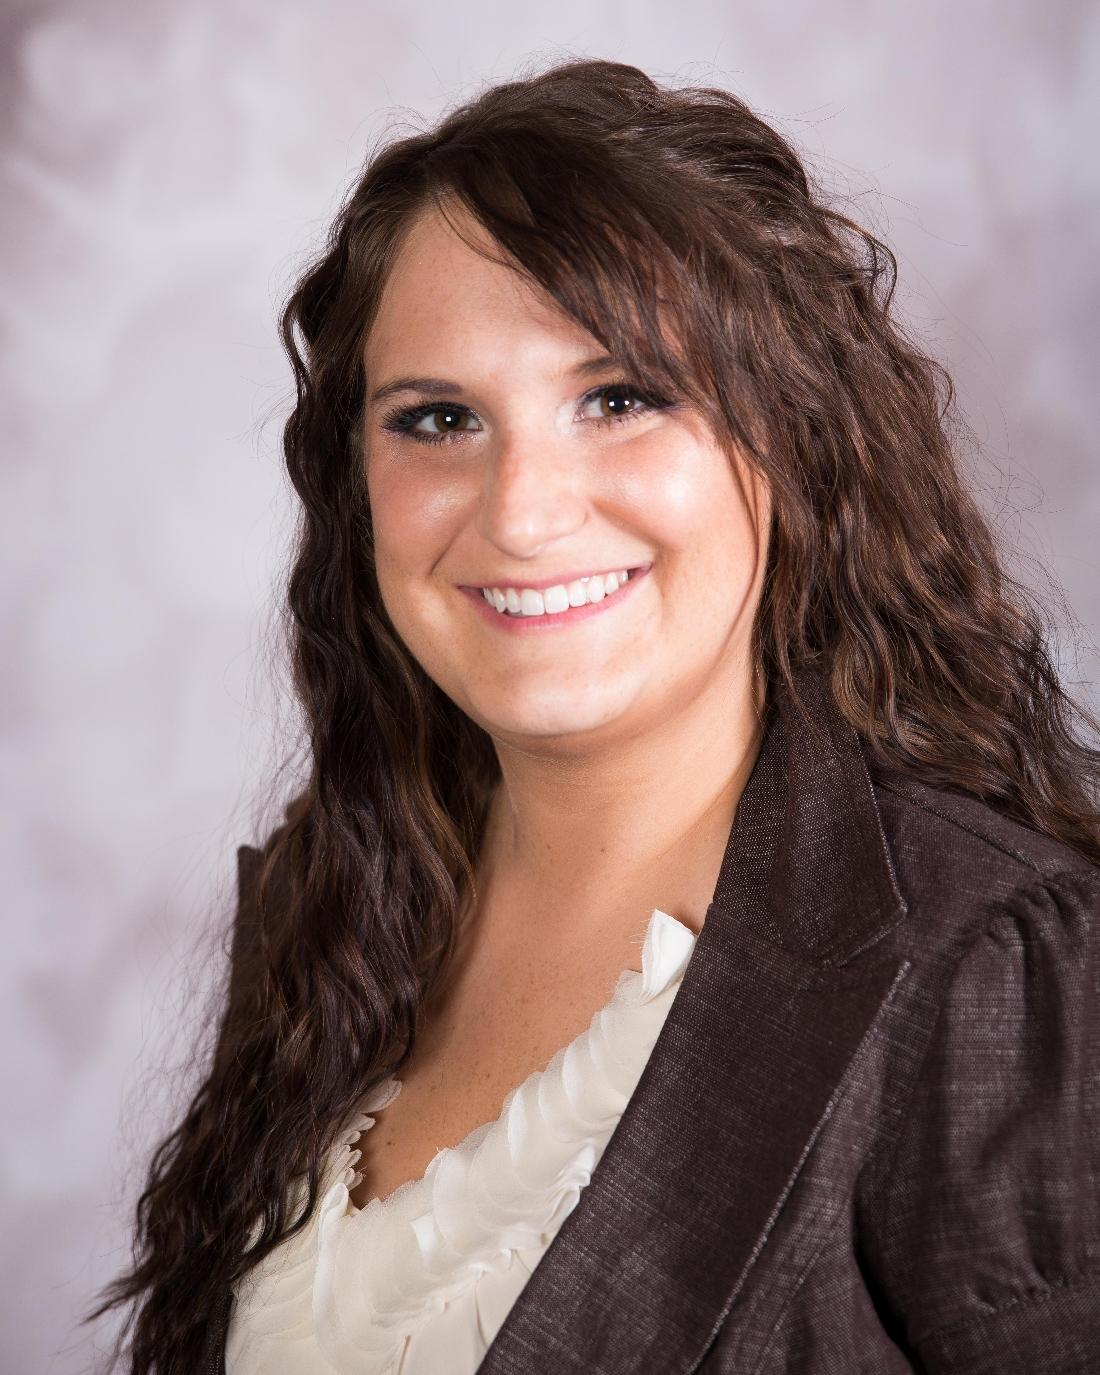 Dr. Melissa Maier DDS a dentist in Mitchell, SD